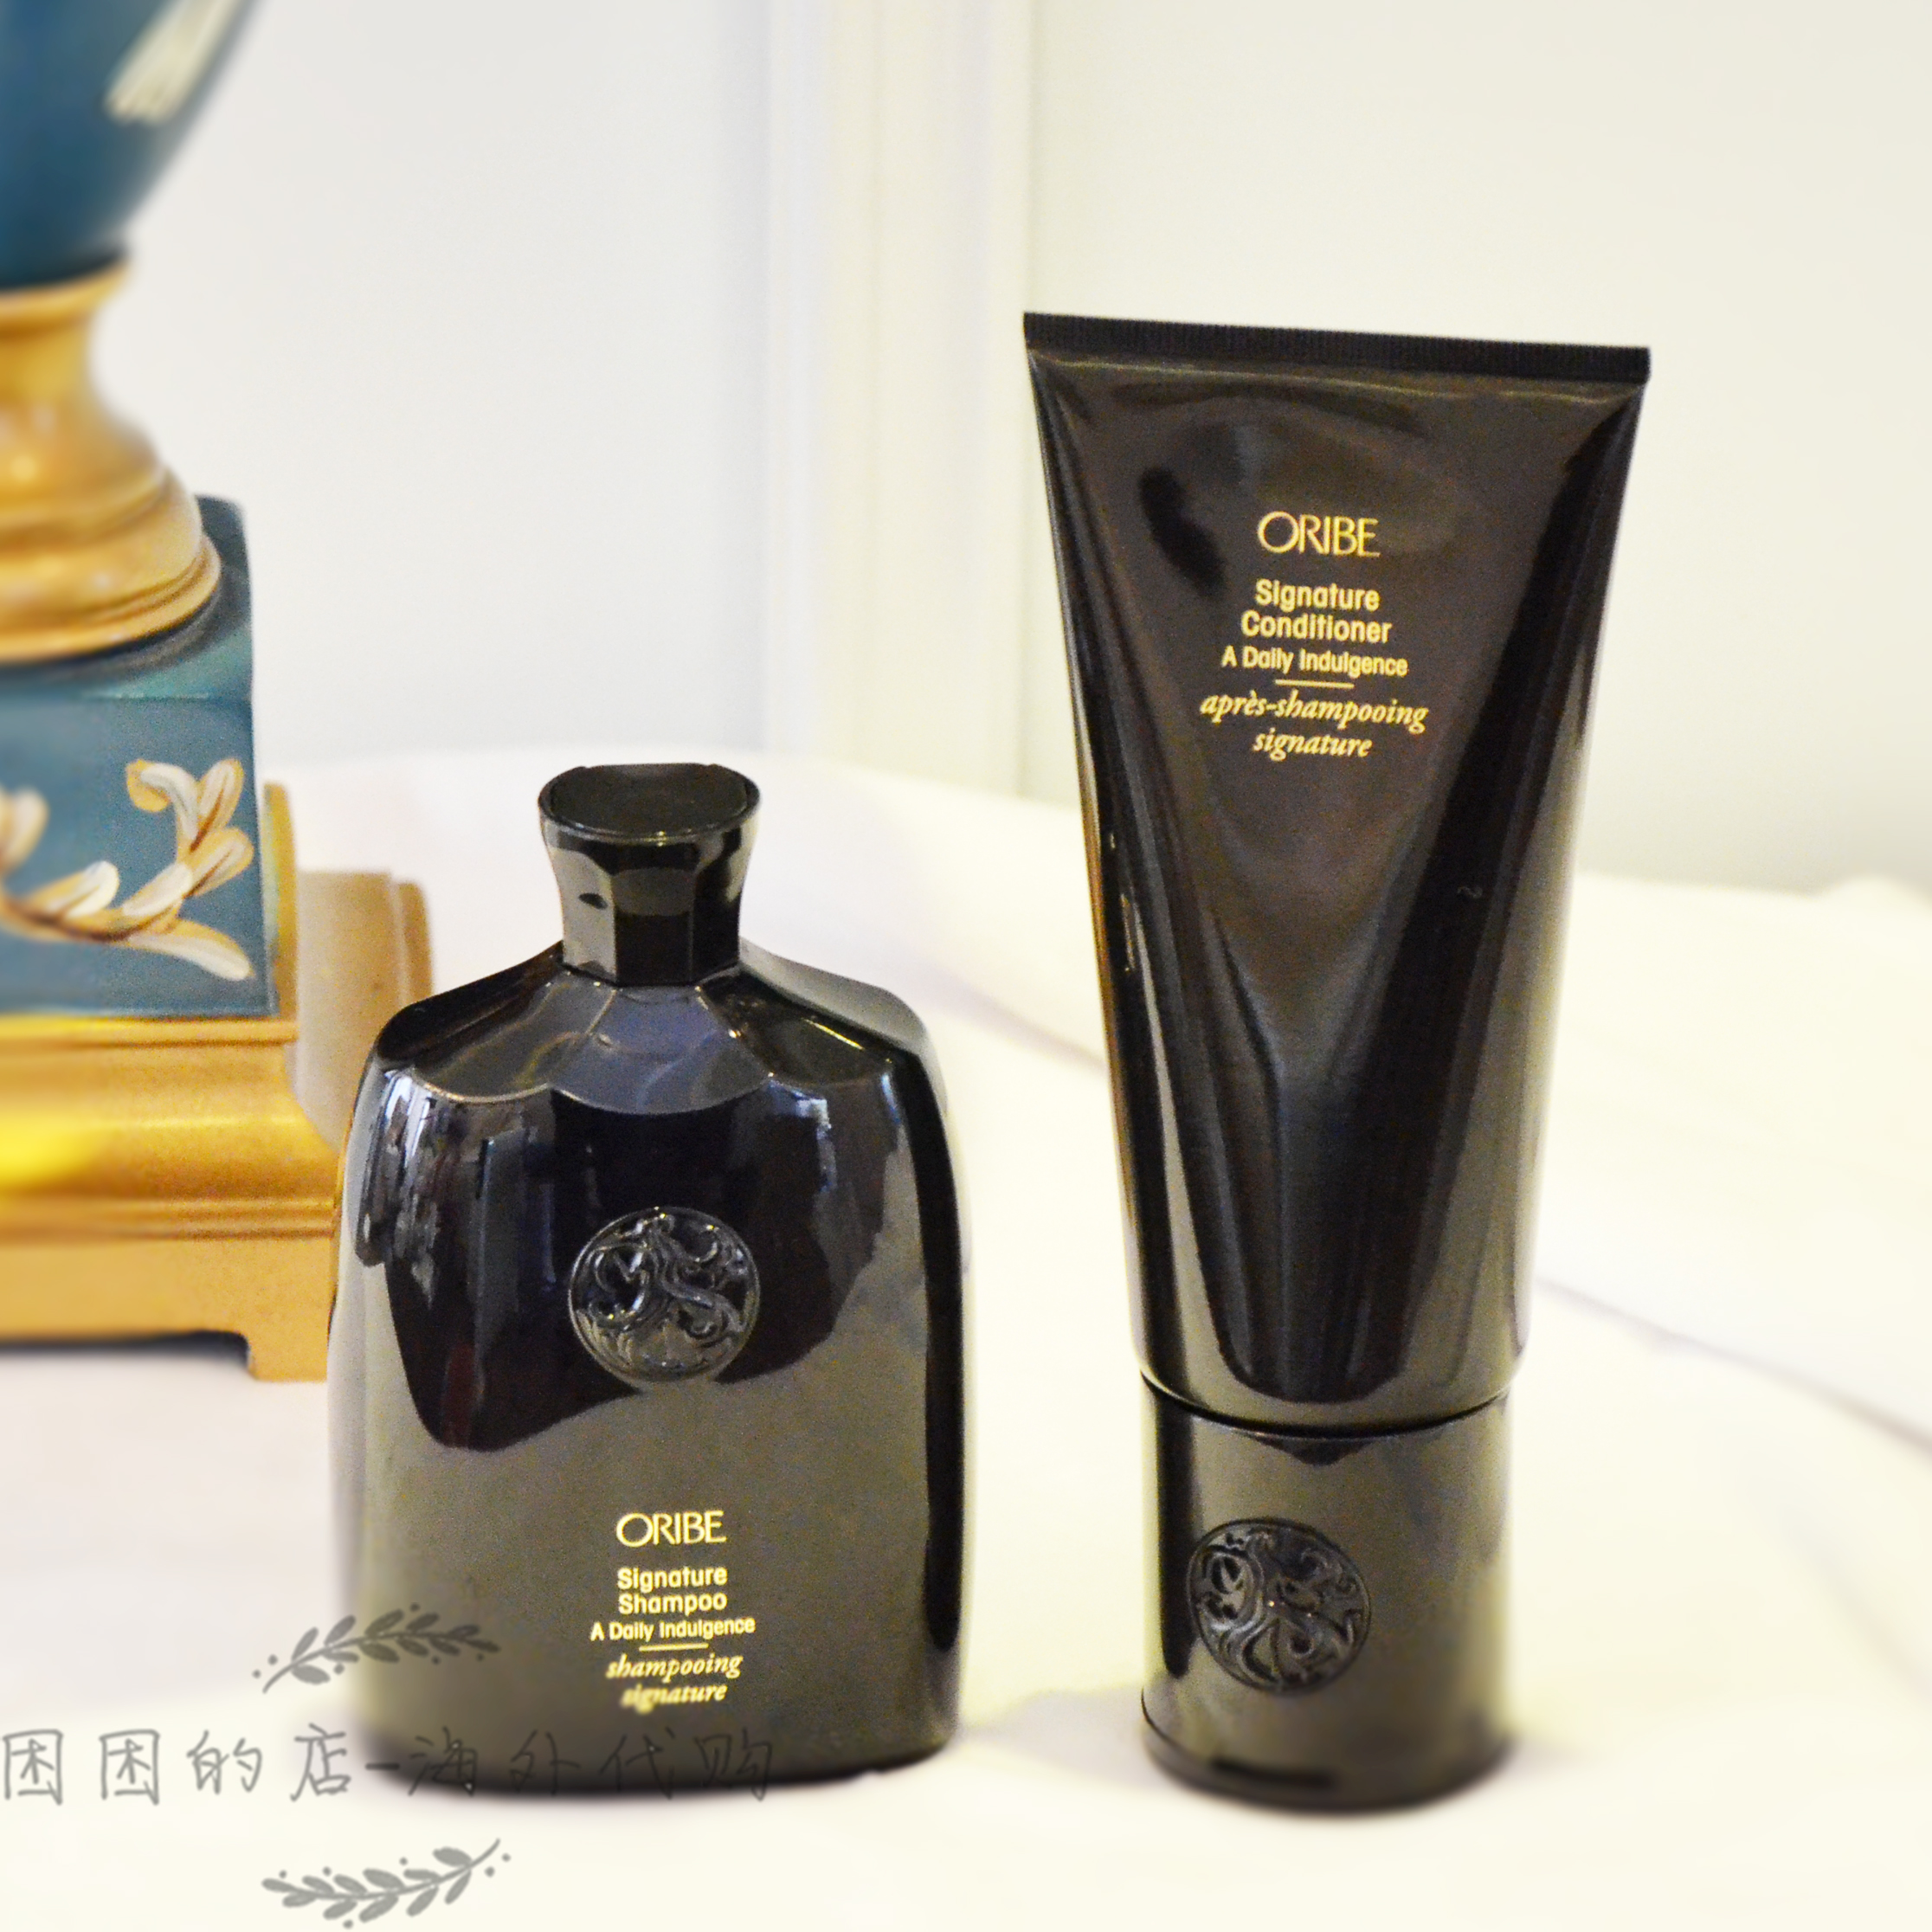 Oribe Shampoo Spot United States Oribe Signature Daily Gold Medal Shampoo Conditioner 250 1000ml Ladies